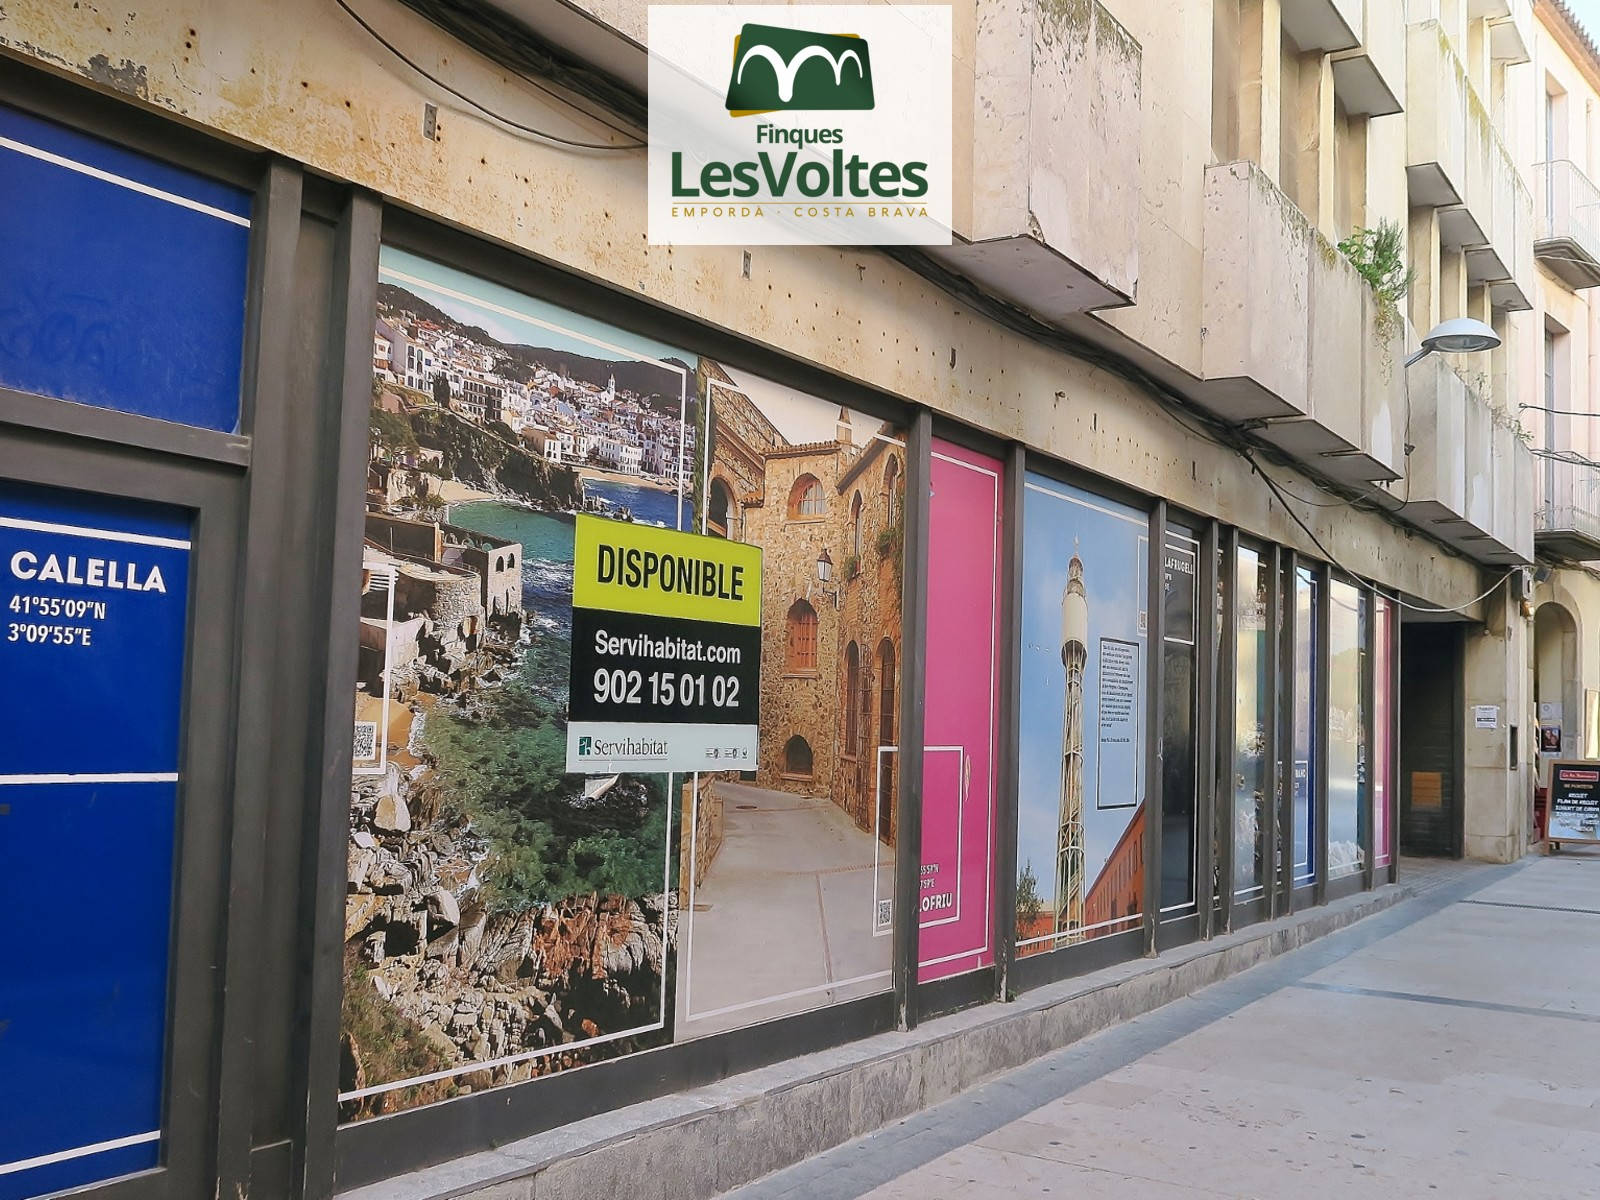 COMMERCIAL PREMISES 173 M2 WITH GREAT SHOWCASE IN THE PEDESTRIAN CENTER OF PALAFRUGELL.